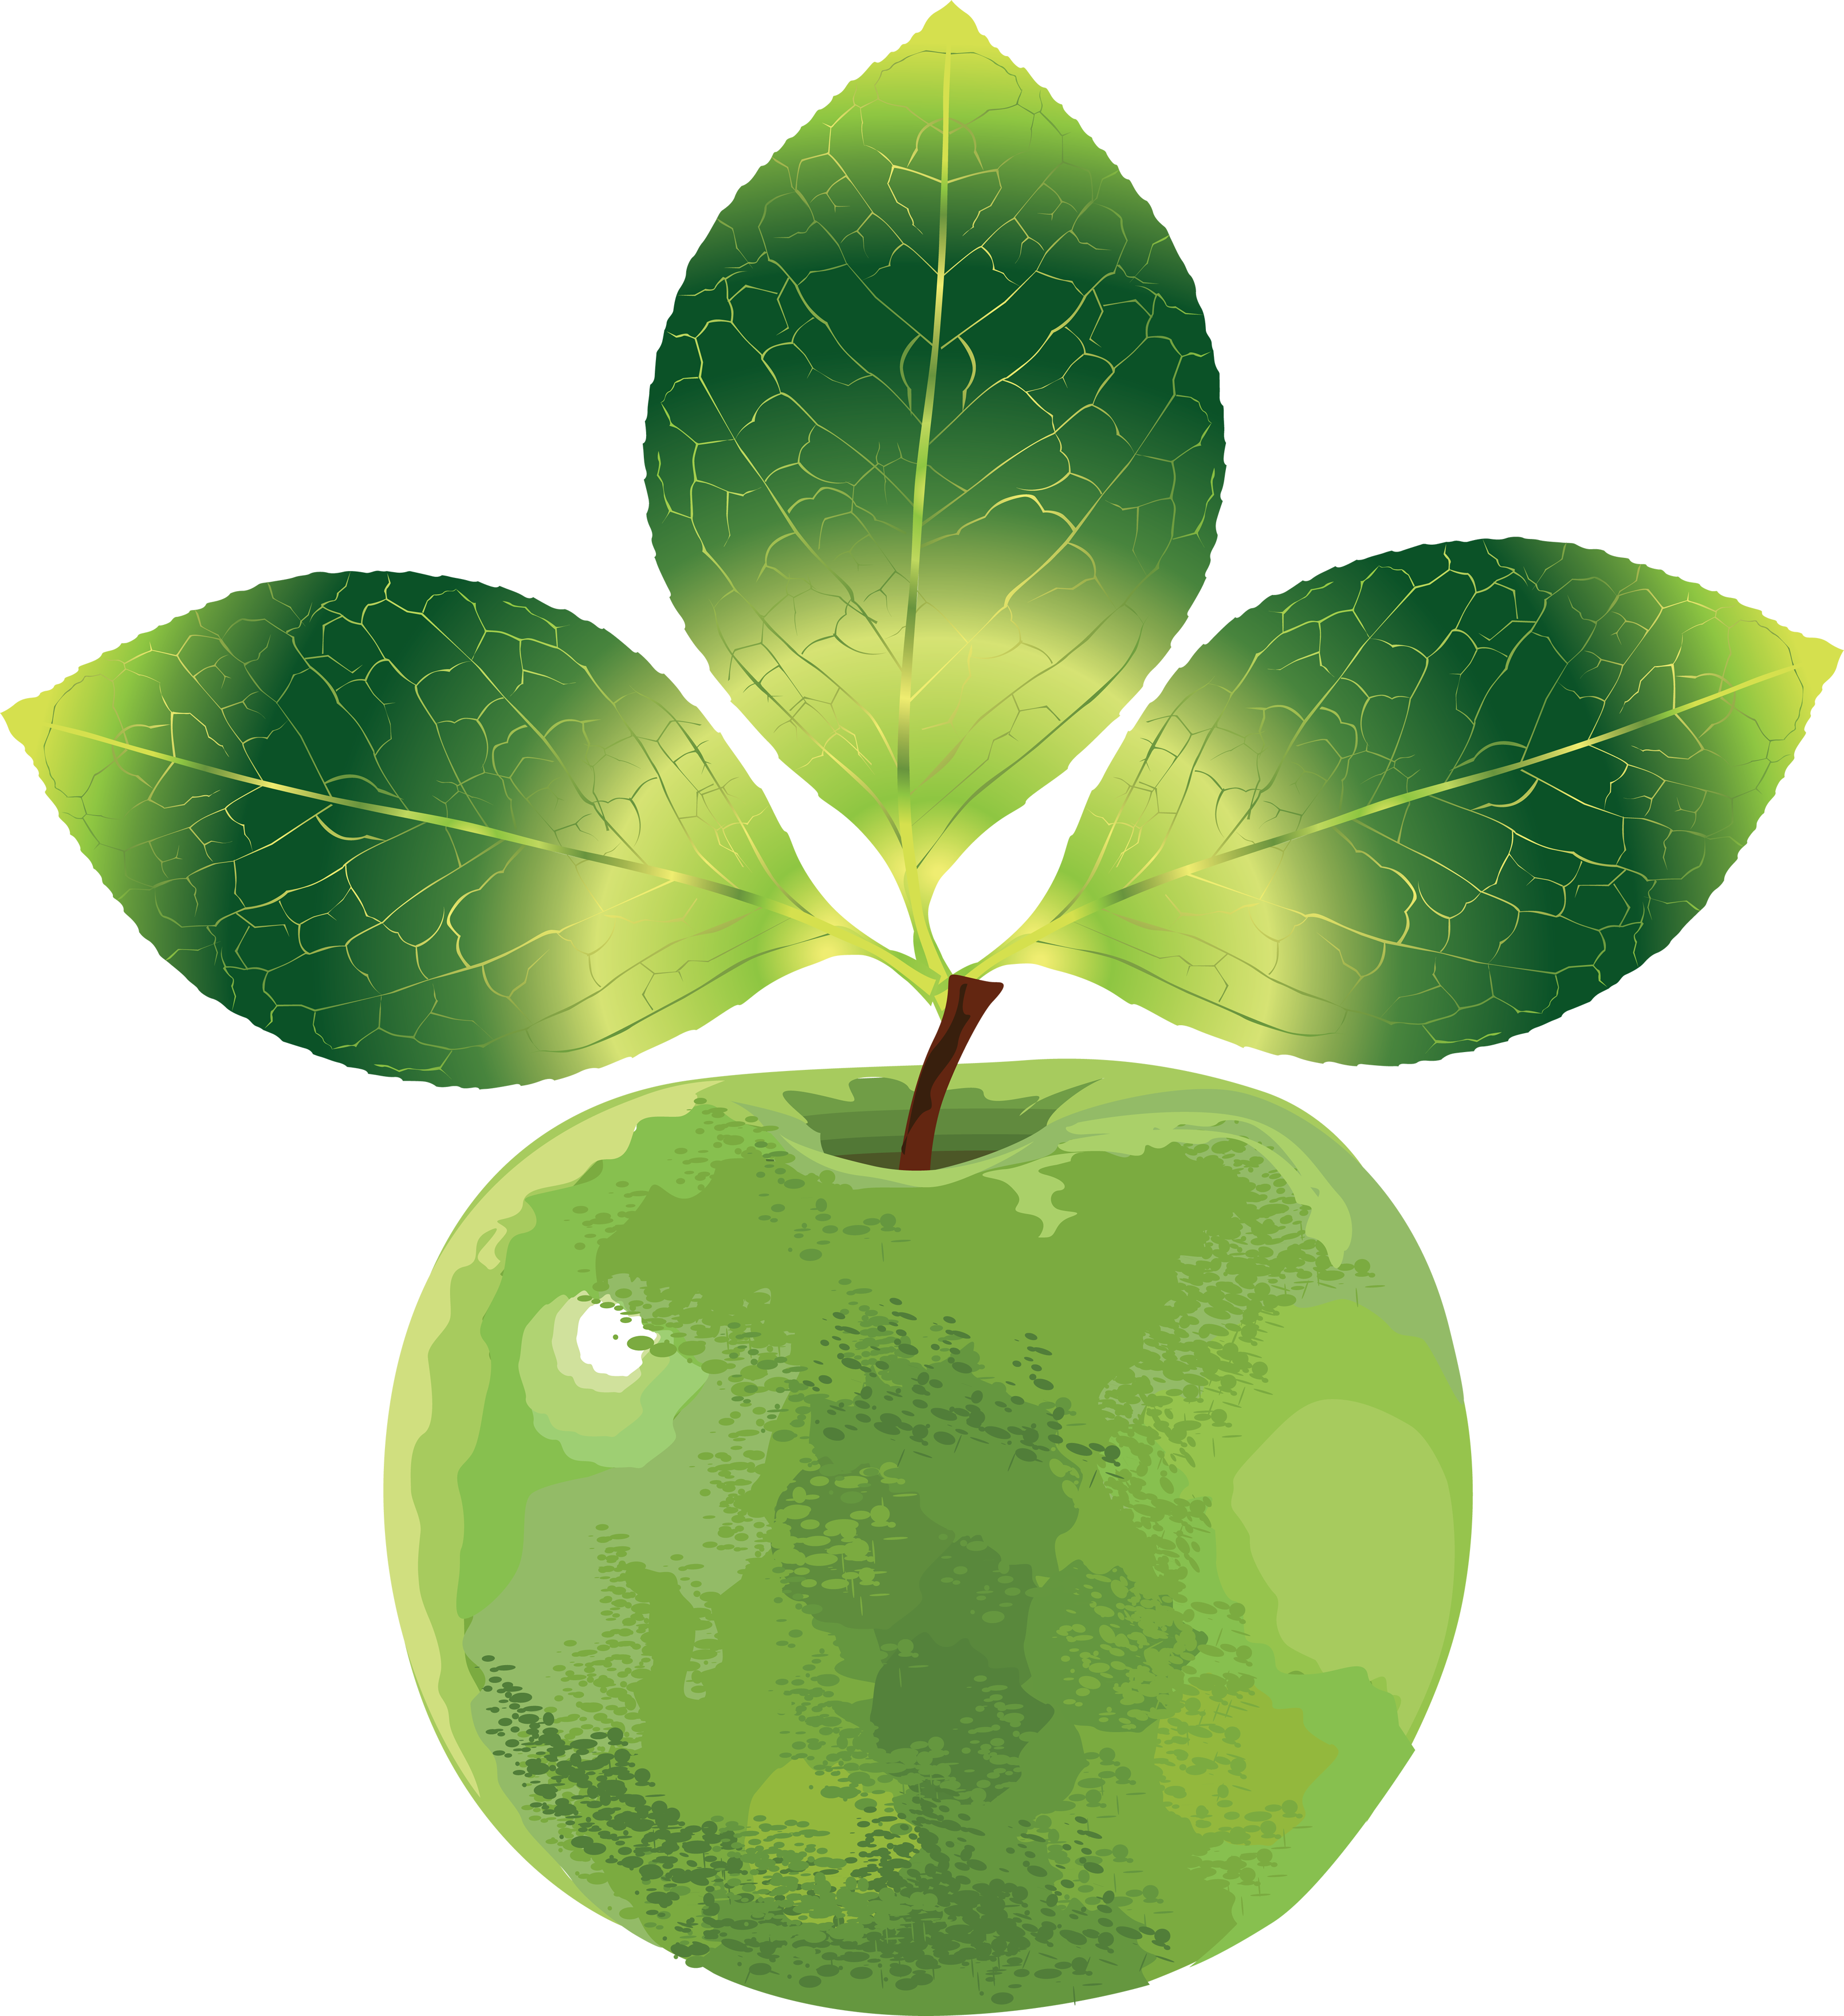 Apple png images free. Fruits clipart green fruit